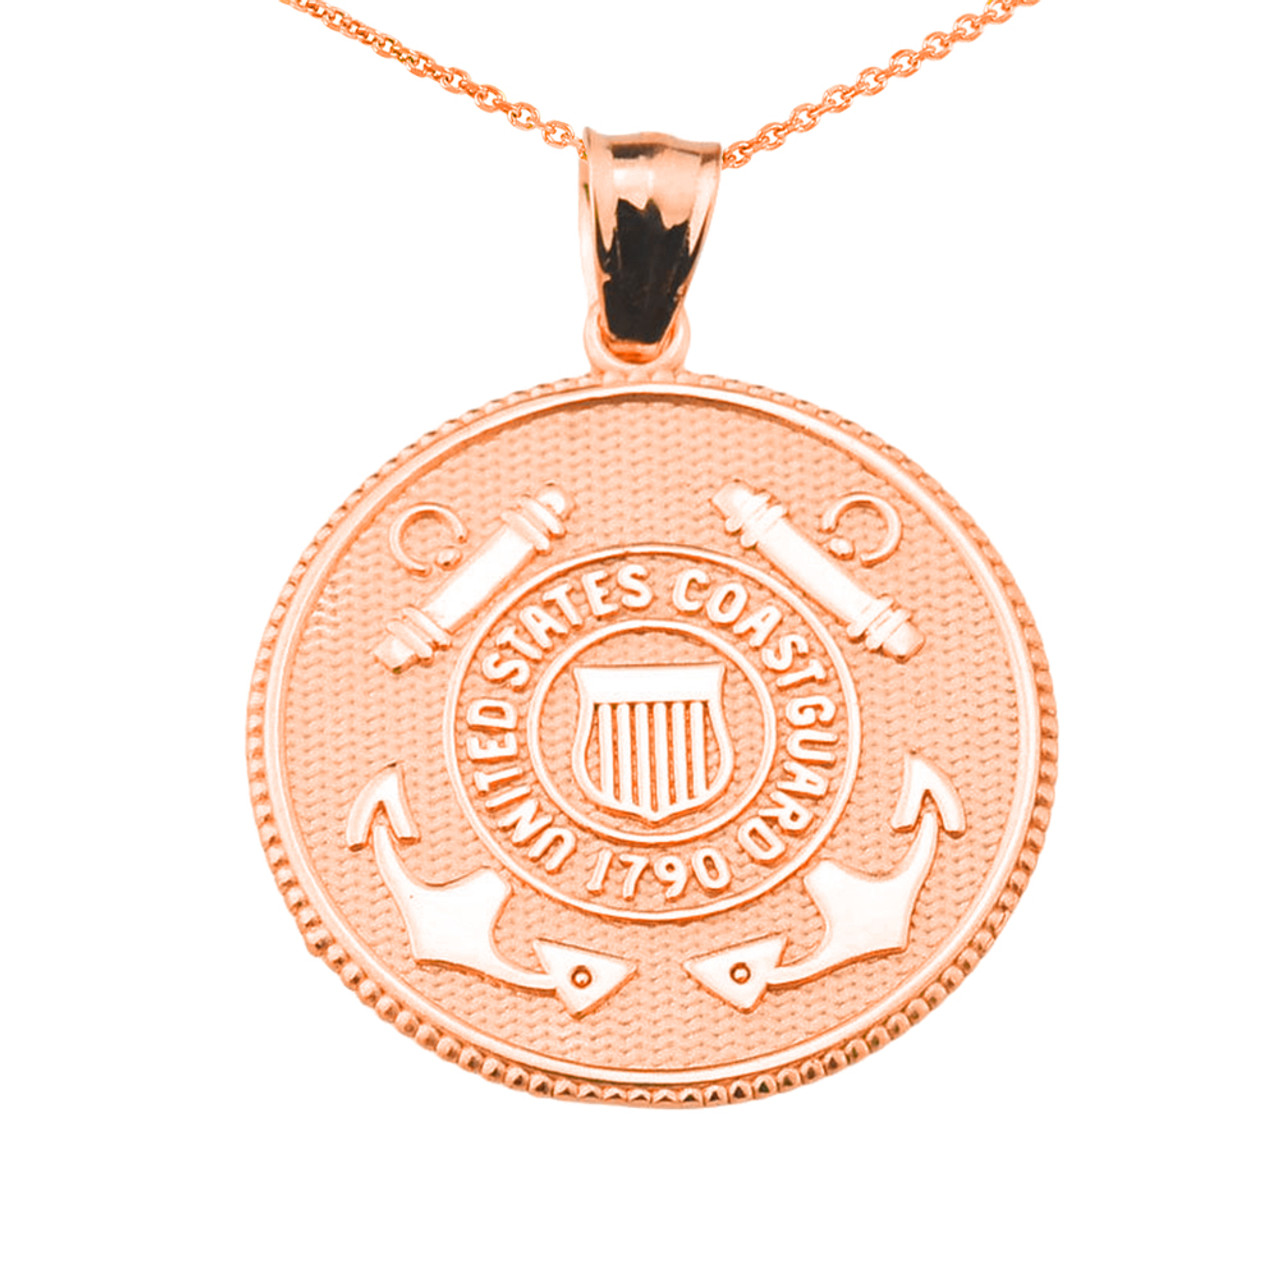 coin christopher necklace saint travel gold pendant products patron chain st stchristopher single